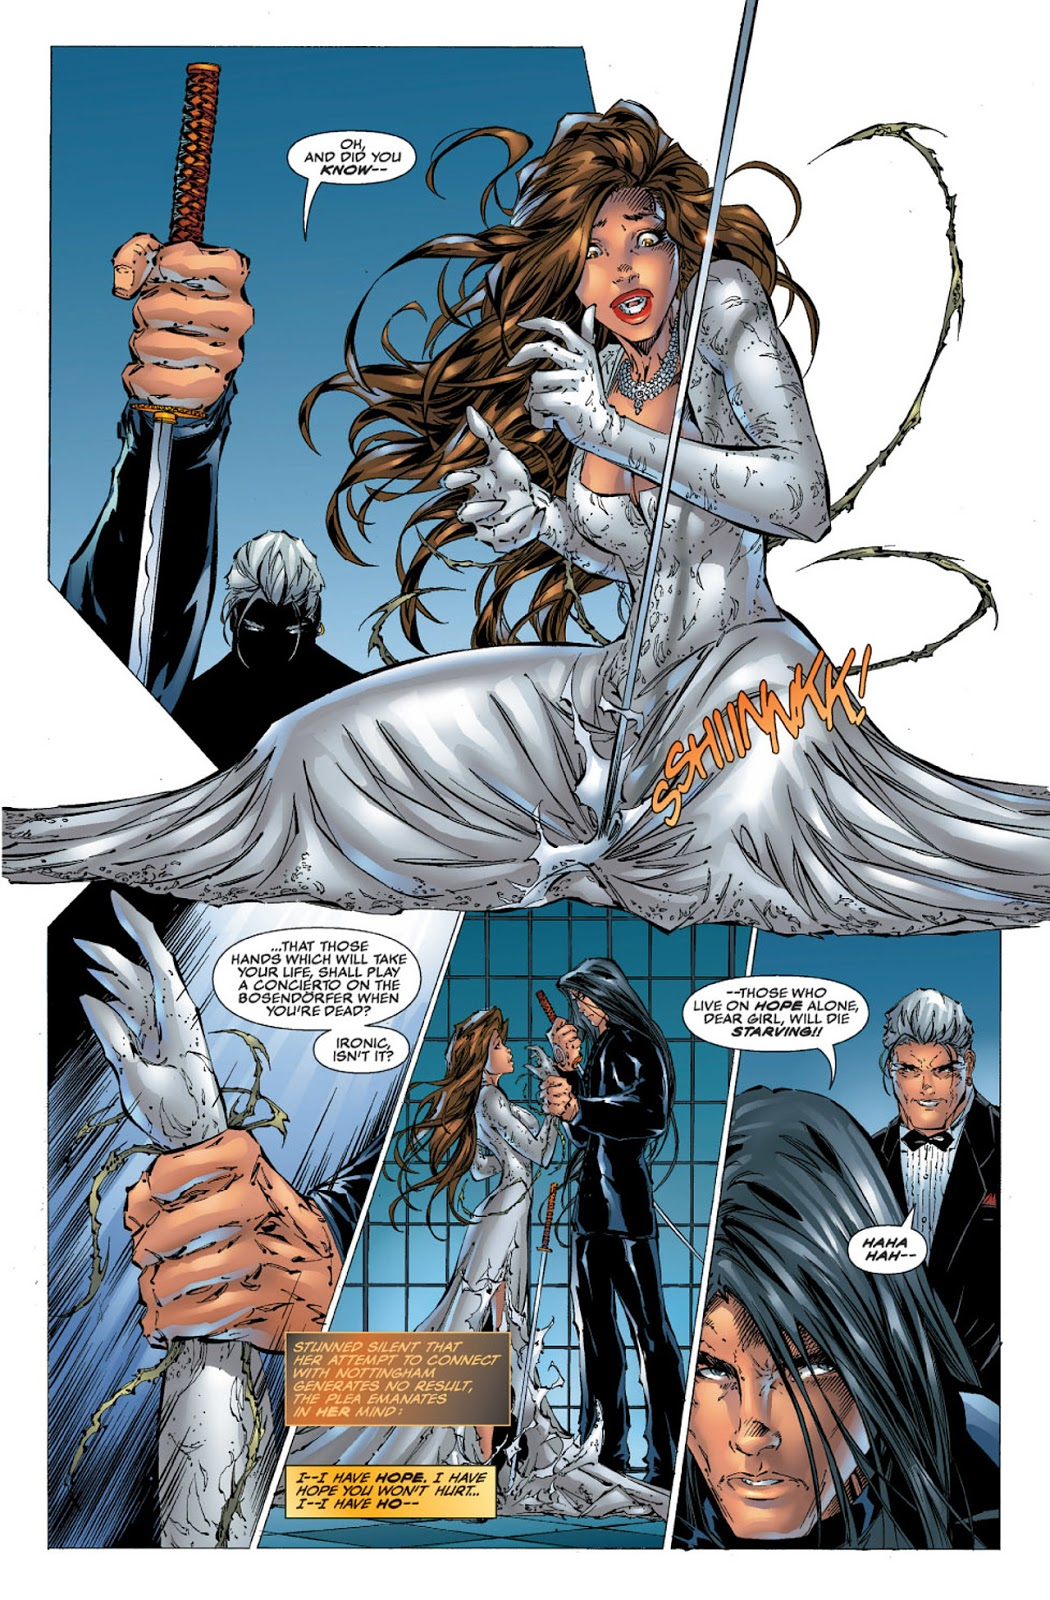 The Complete Witchblade Vol 1 review